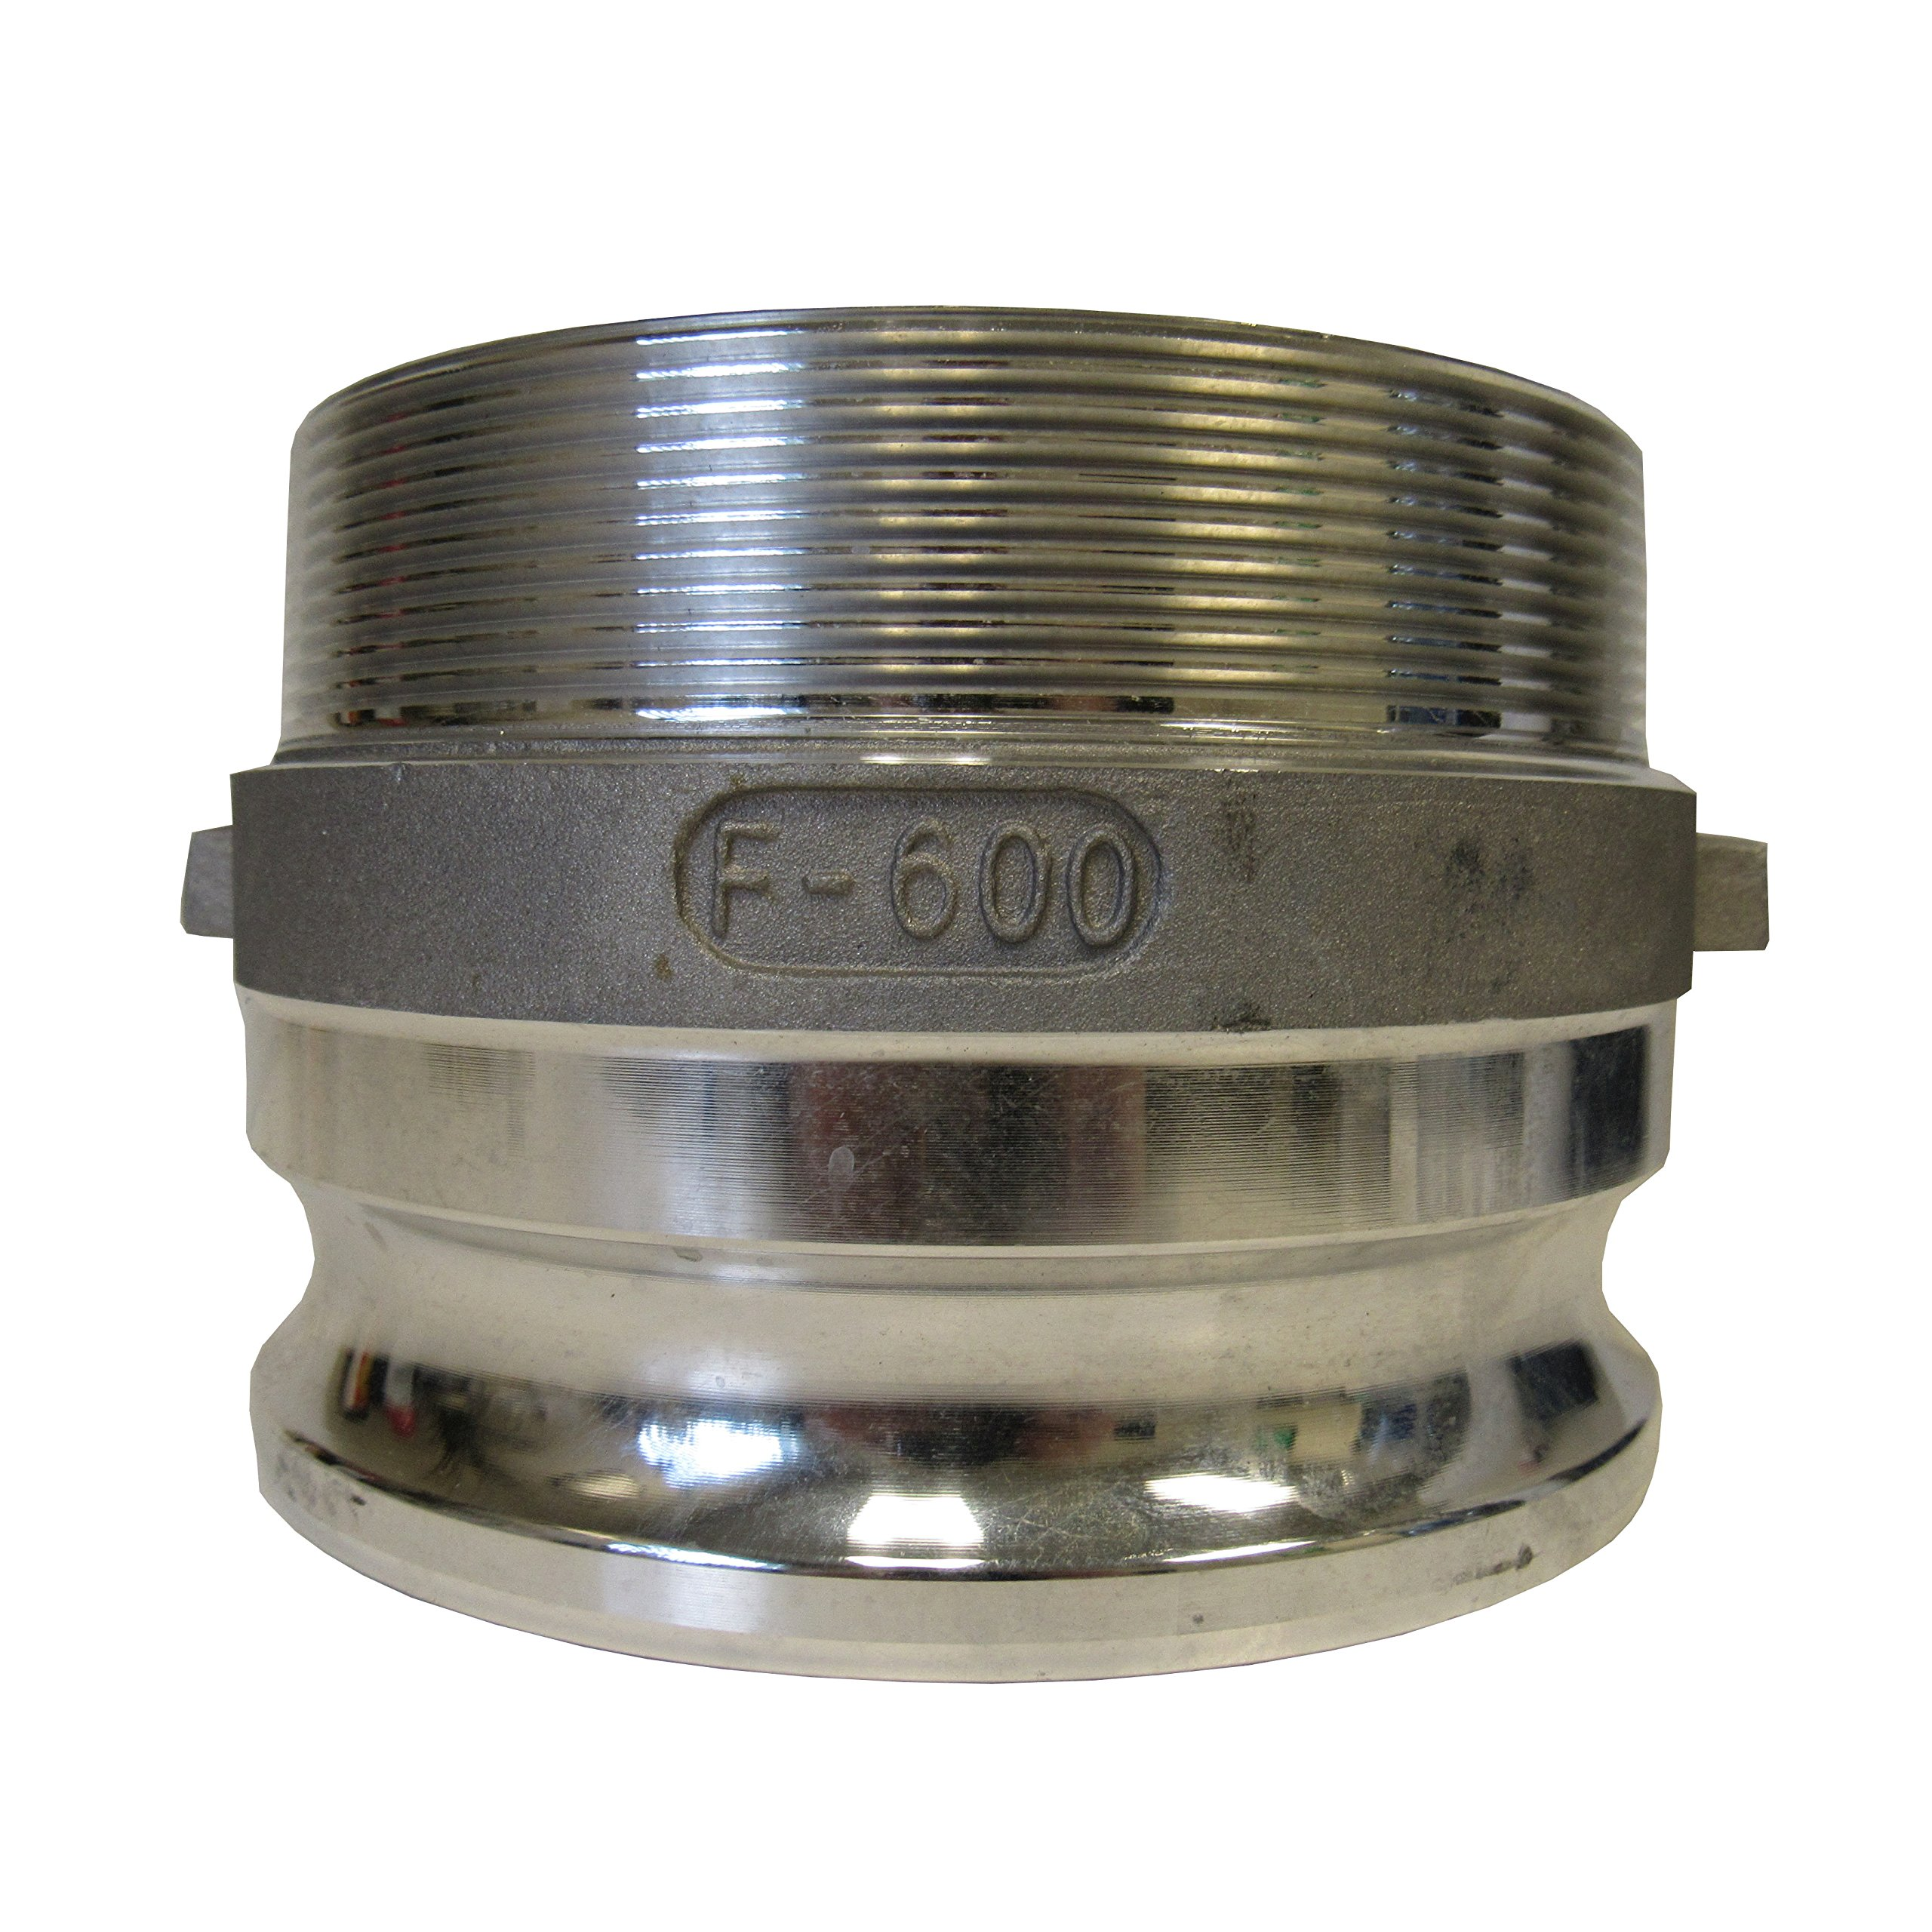 CAMLOCK - 600F ALUMINUM CAM & GROOVE FITTING; 6 INCH MALE ADAPTER/ MALE NPT